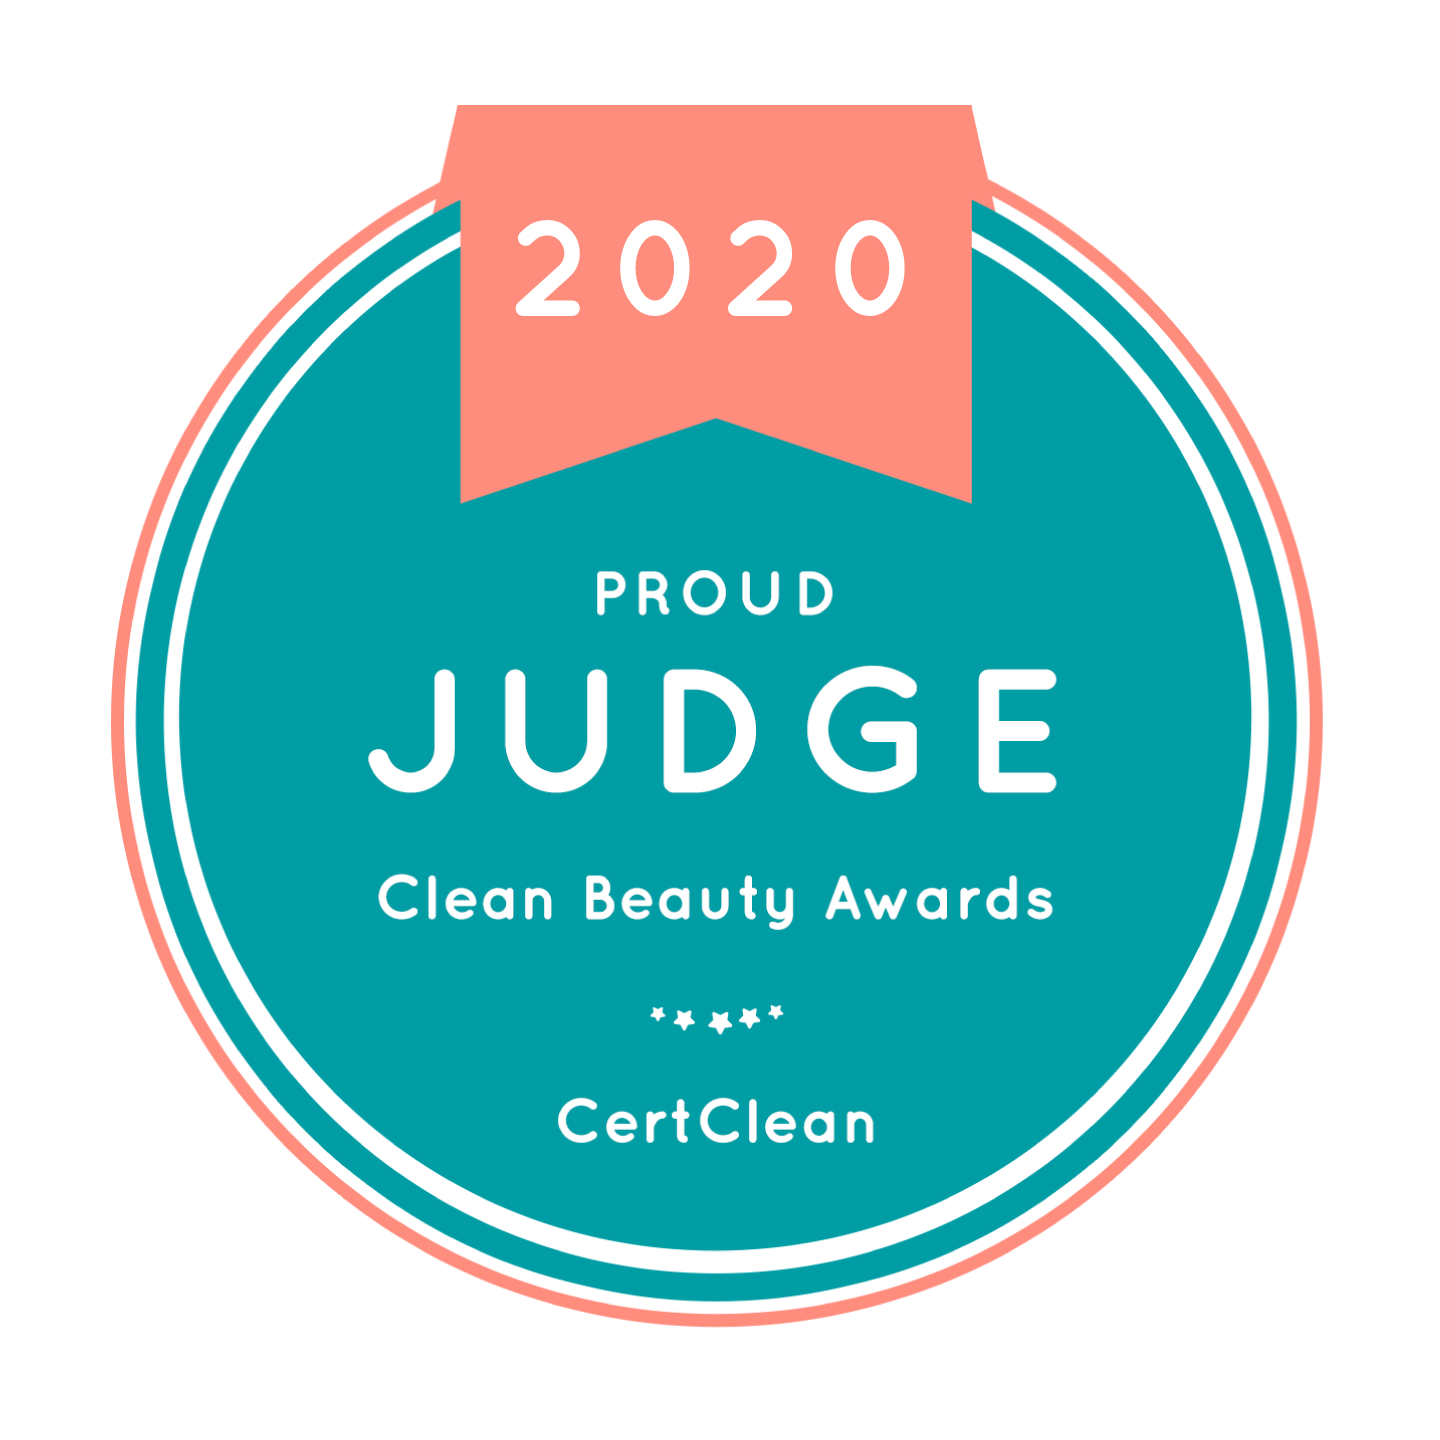 Clean Beauty Awards 2020 proud judge badge